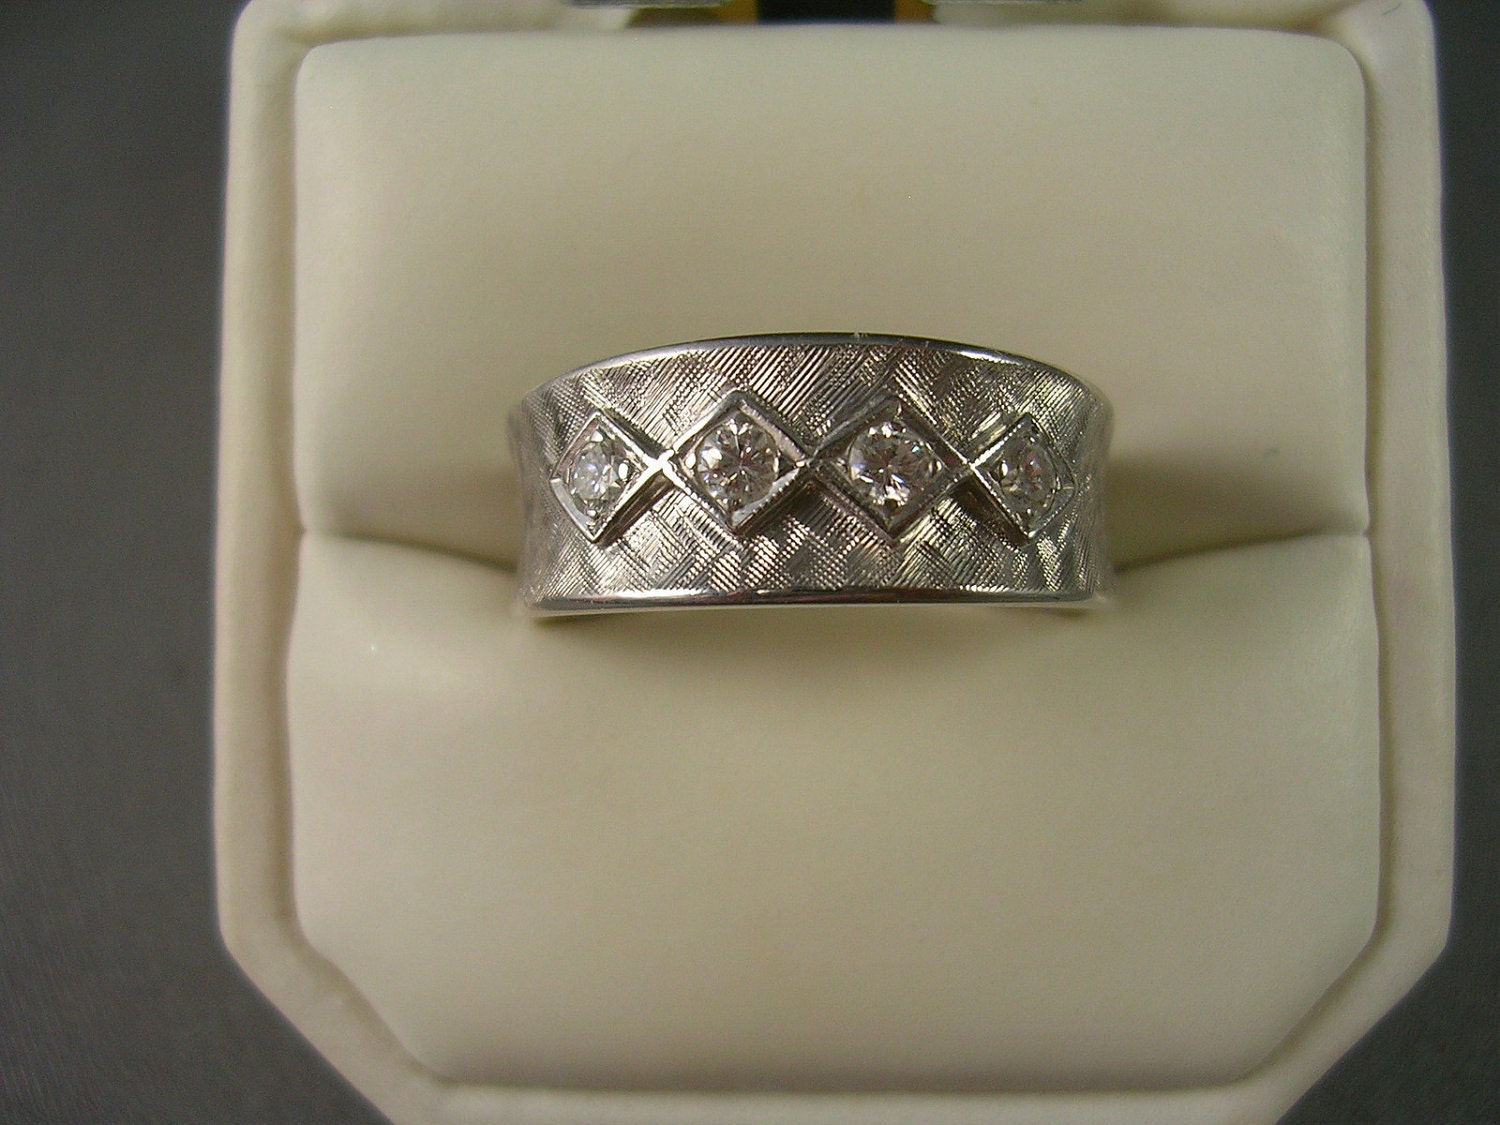 1960s cigar band ring 14k white gold by